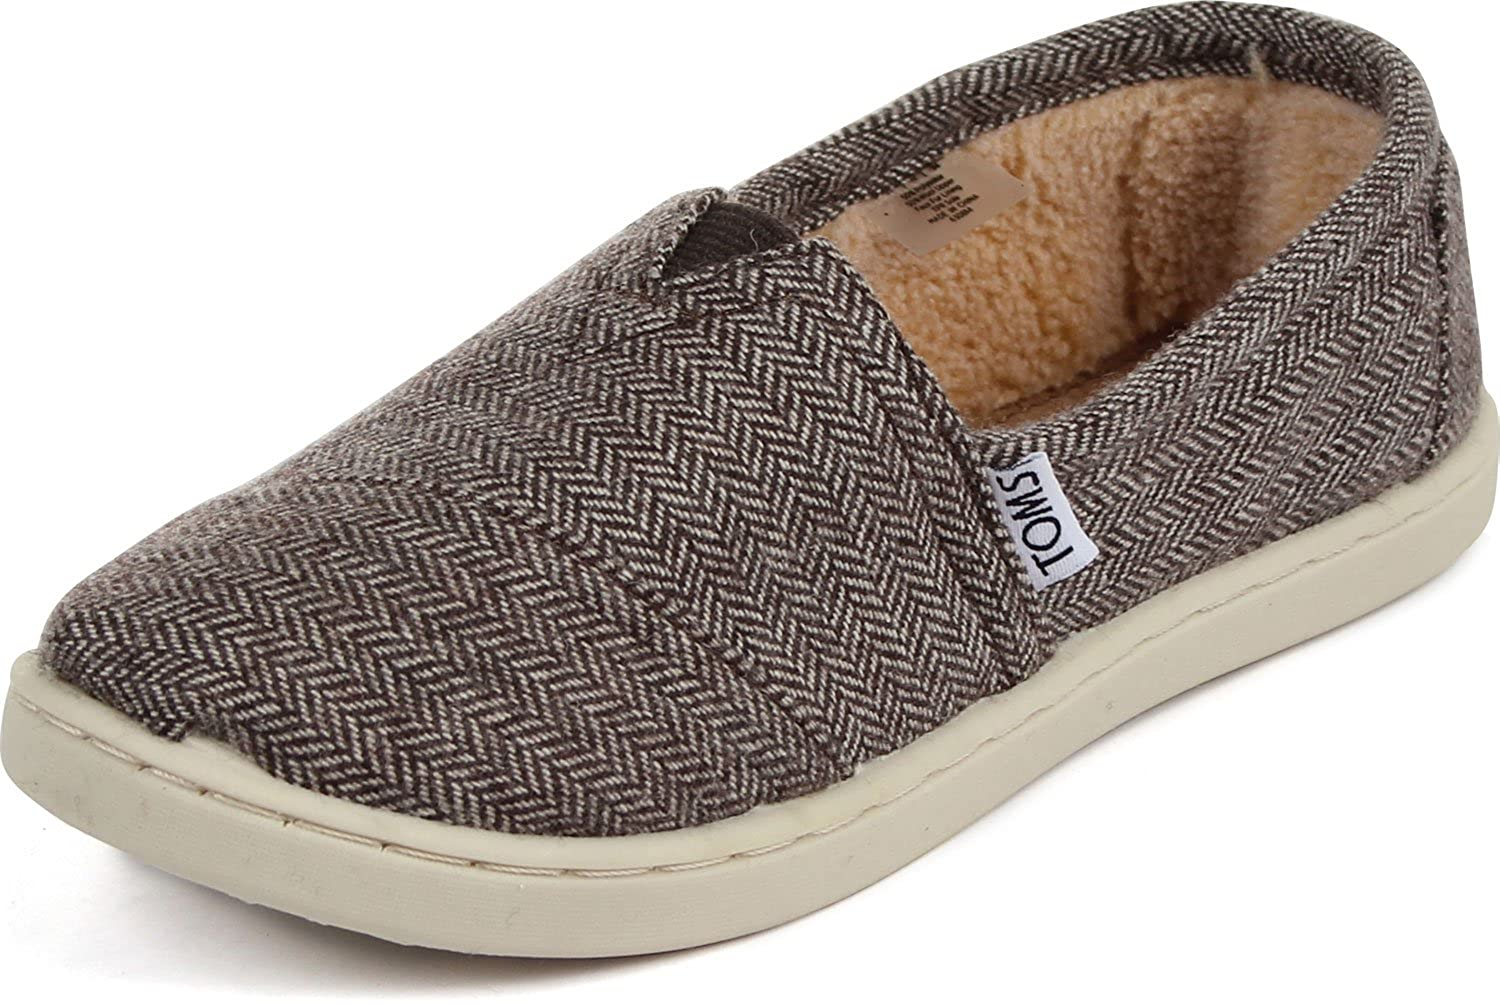 Amazon.com | TOMS - Youth Classic Slip-On Shoes, Size: 12 M US Little Kid, Color: Brown Herringbone | Loafers